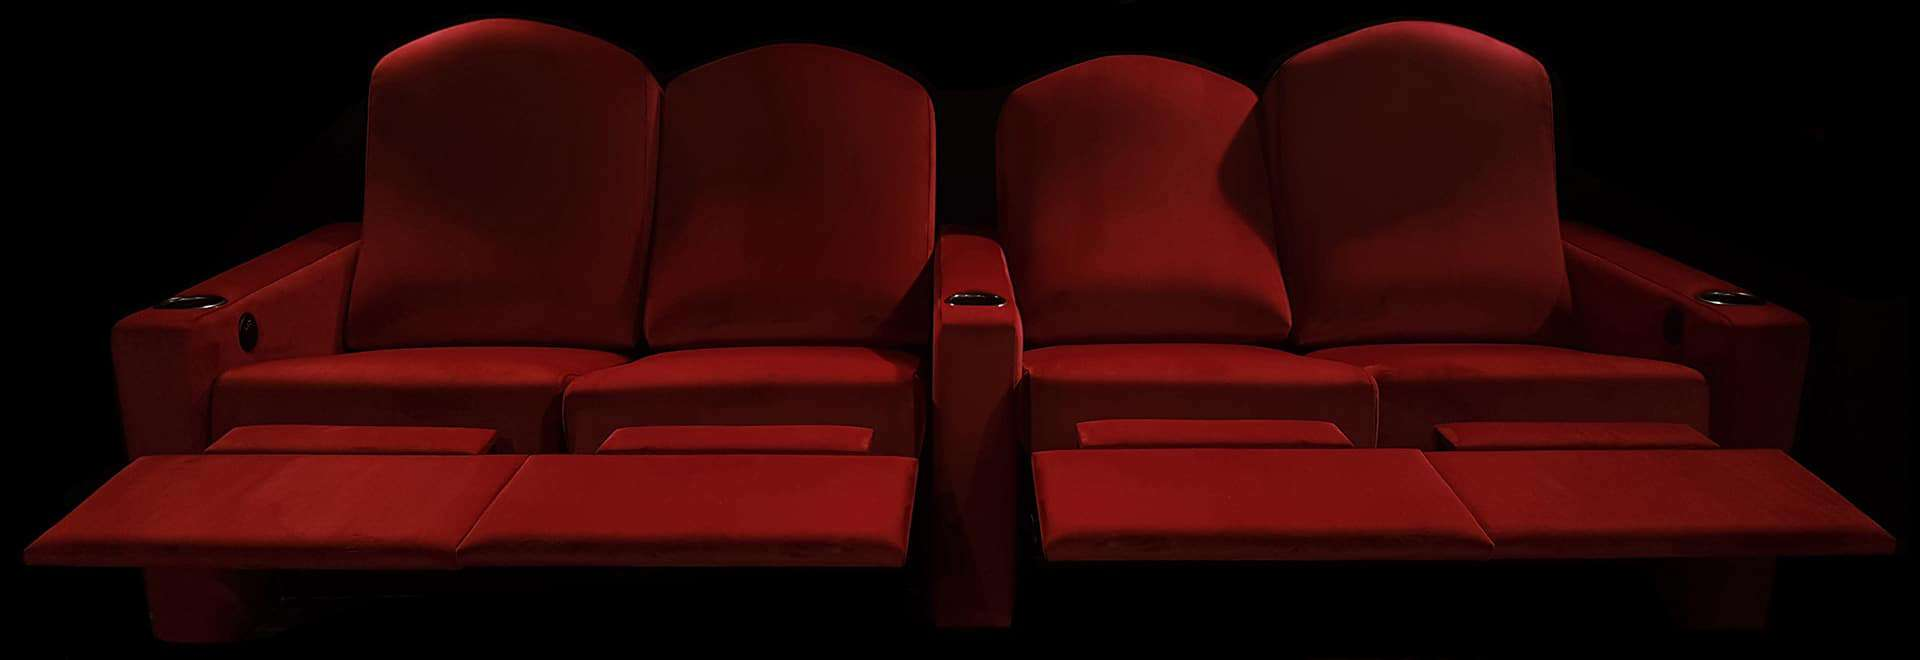 cuddler couch home theater red recliner image